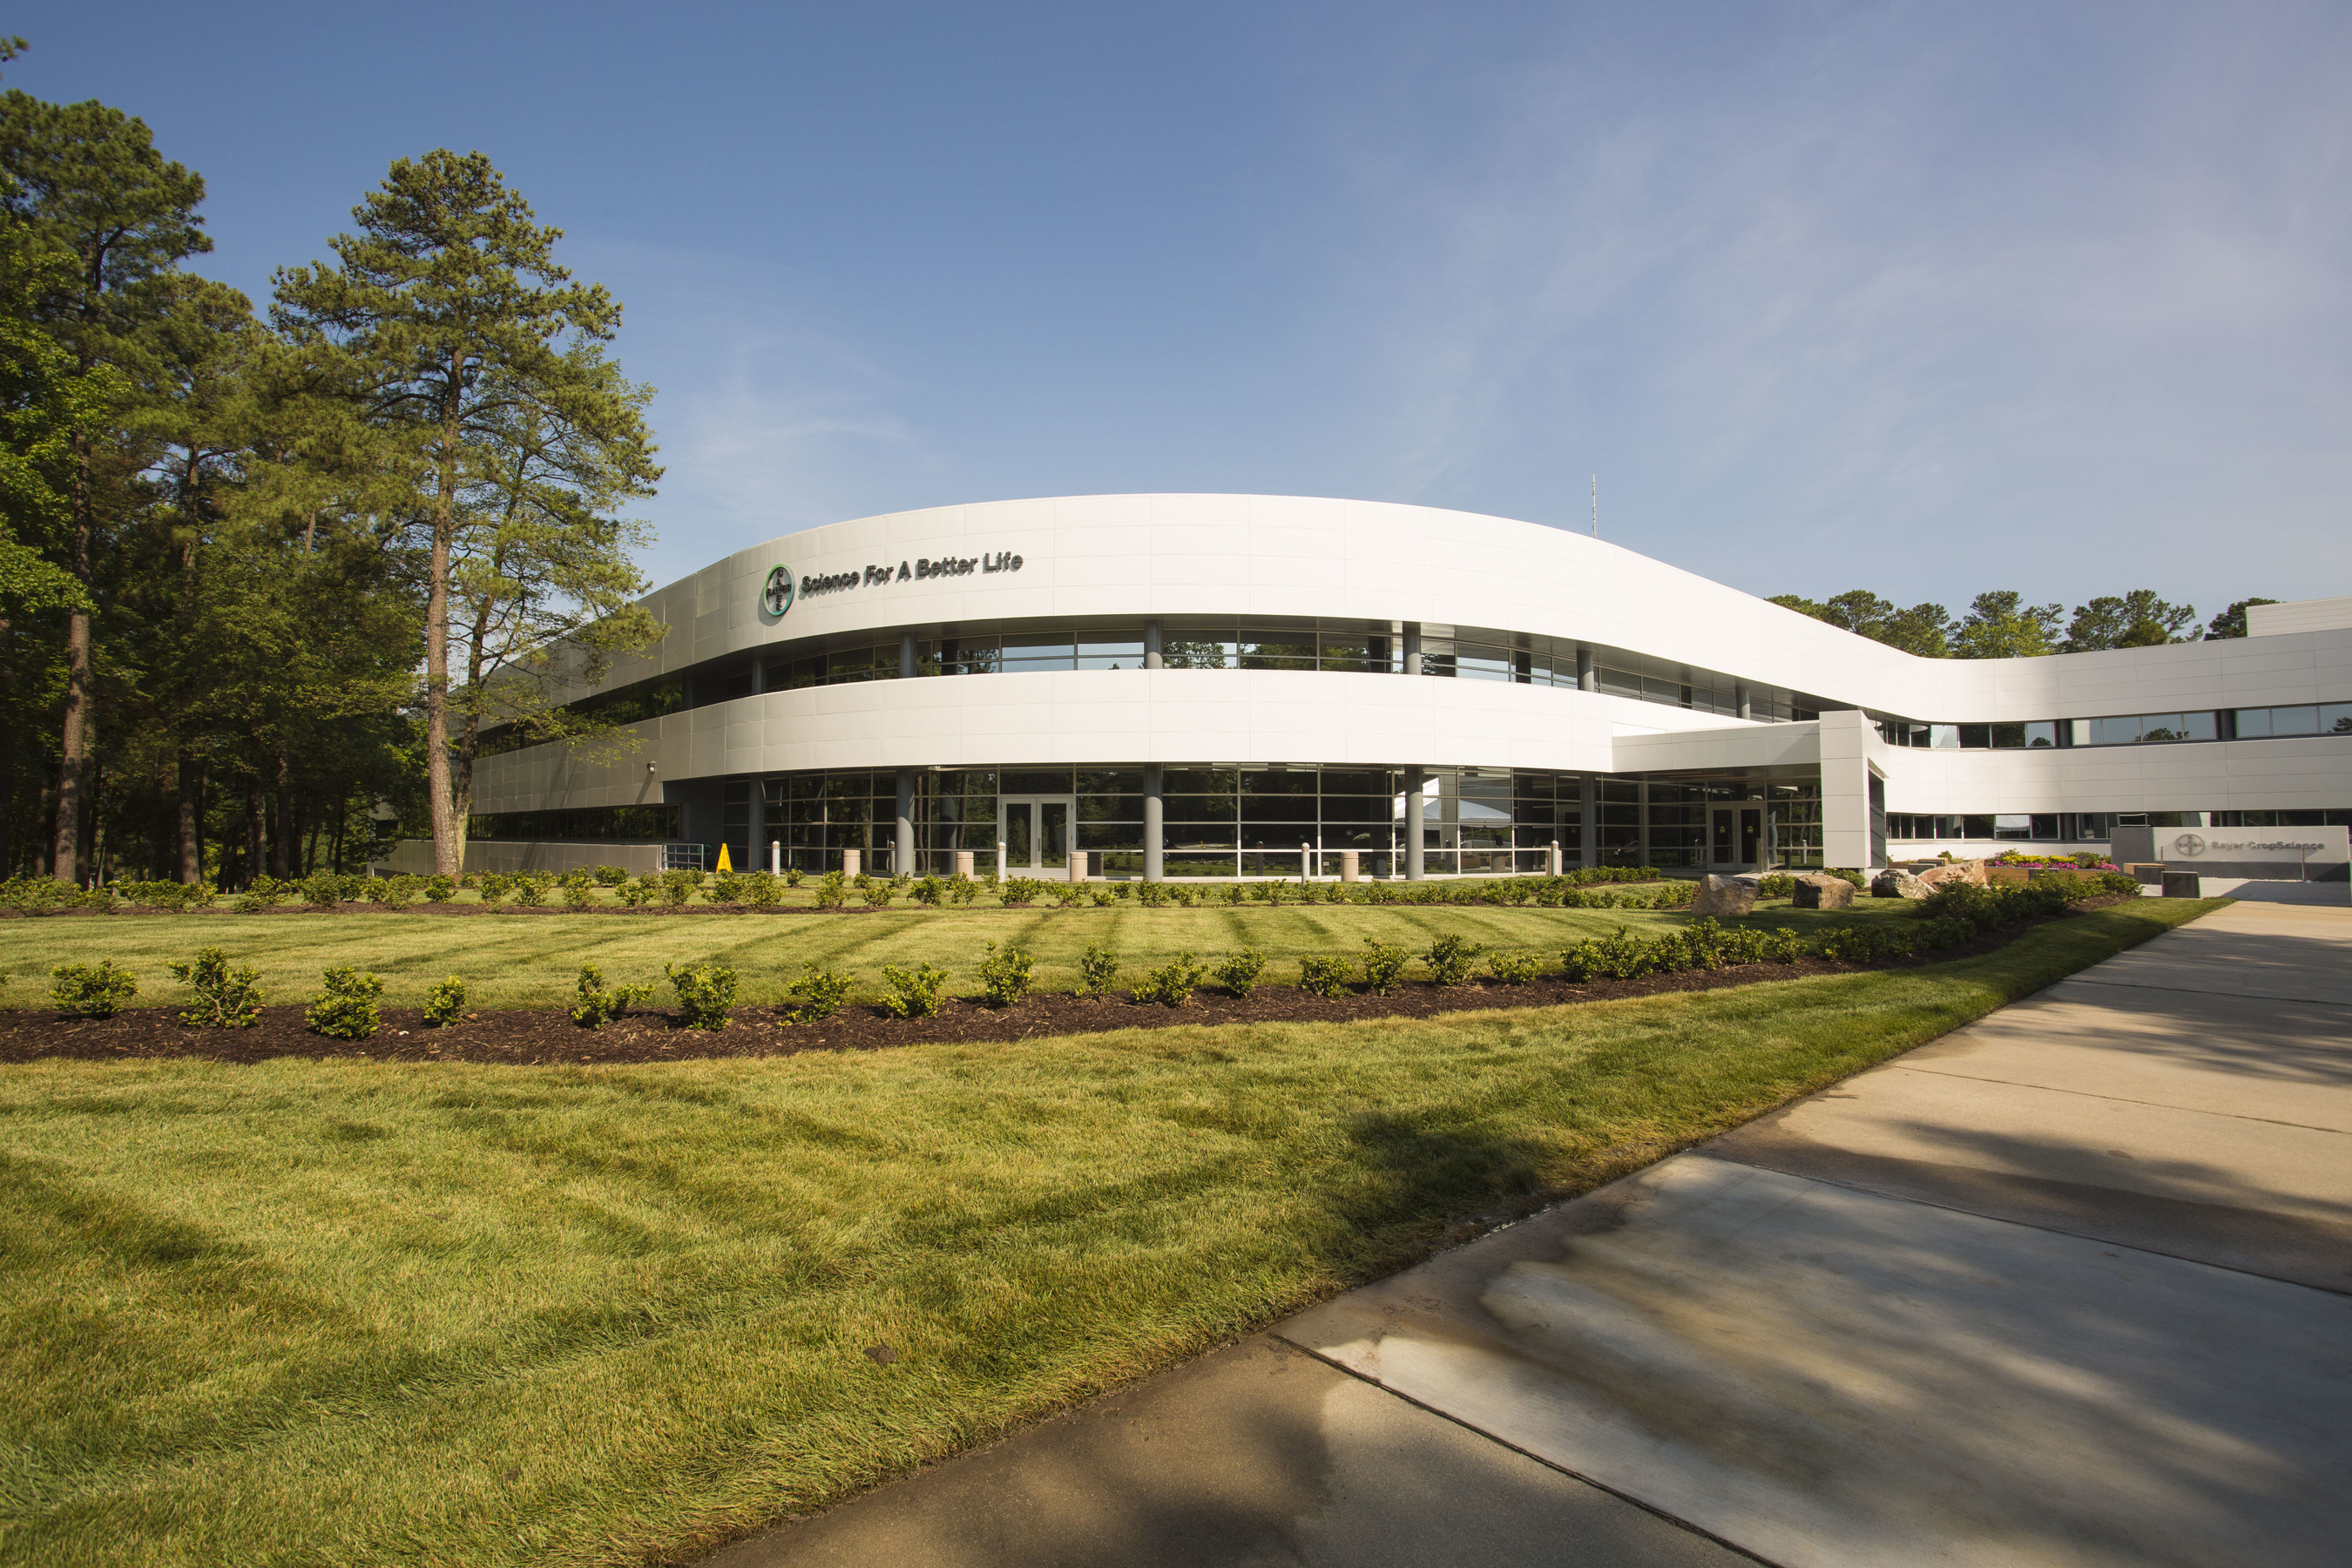 Today, Bayer CropScience celebrated two recent investment milestones: the completion of a $33 million office modernization project and the groundbreaking of Greenhouse 6, a $34 million research facility at its Research Triangle Park (RTP) headquarters.